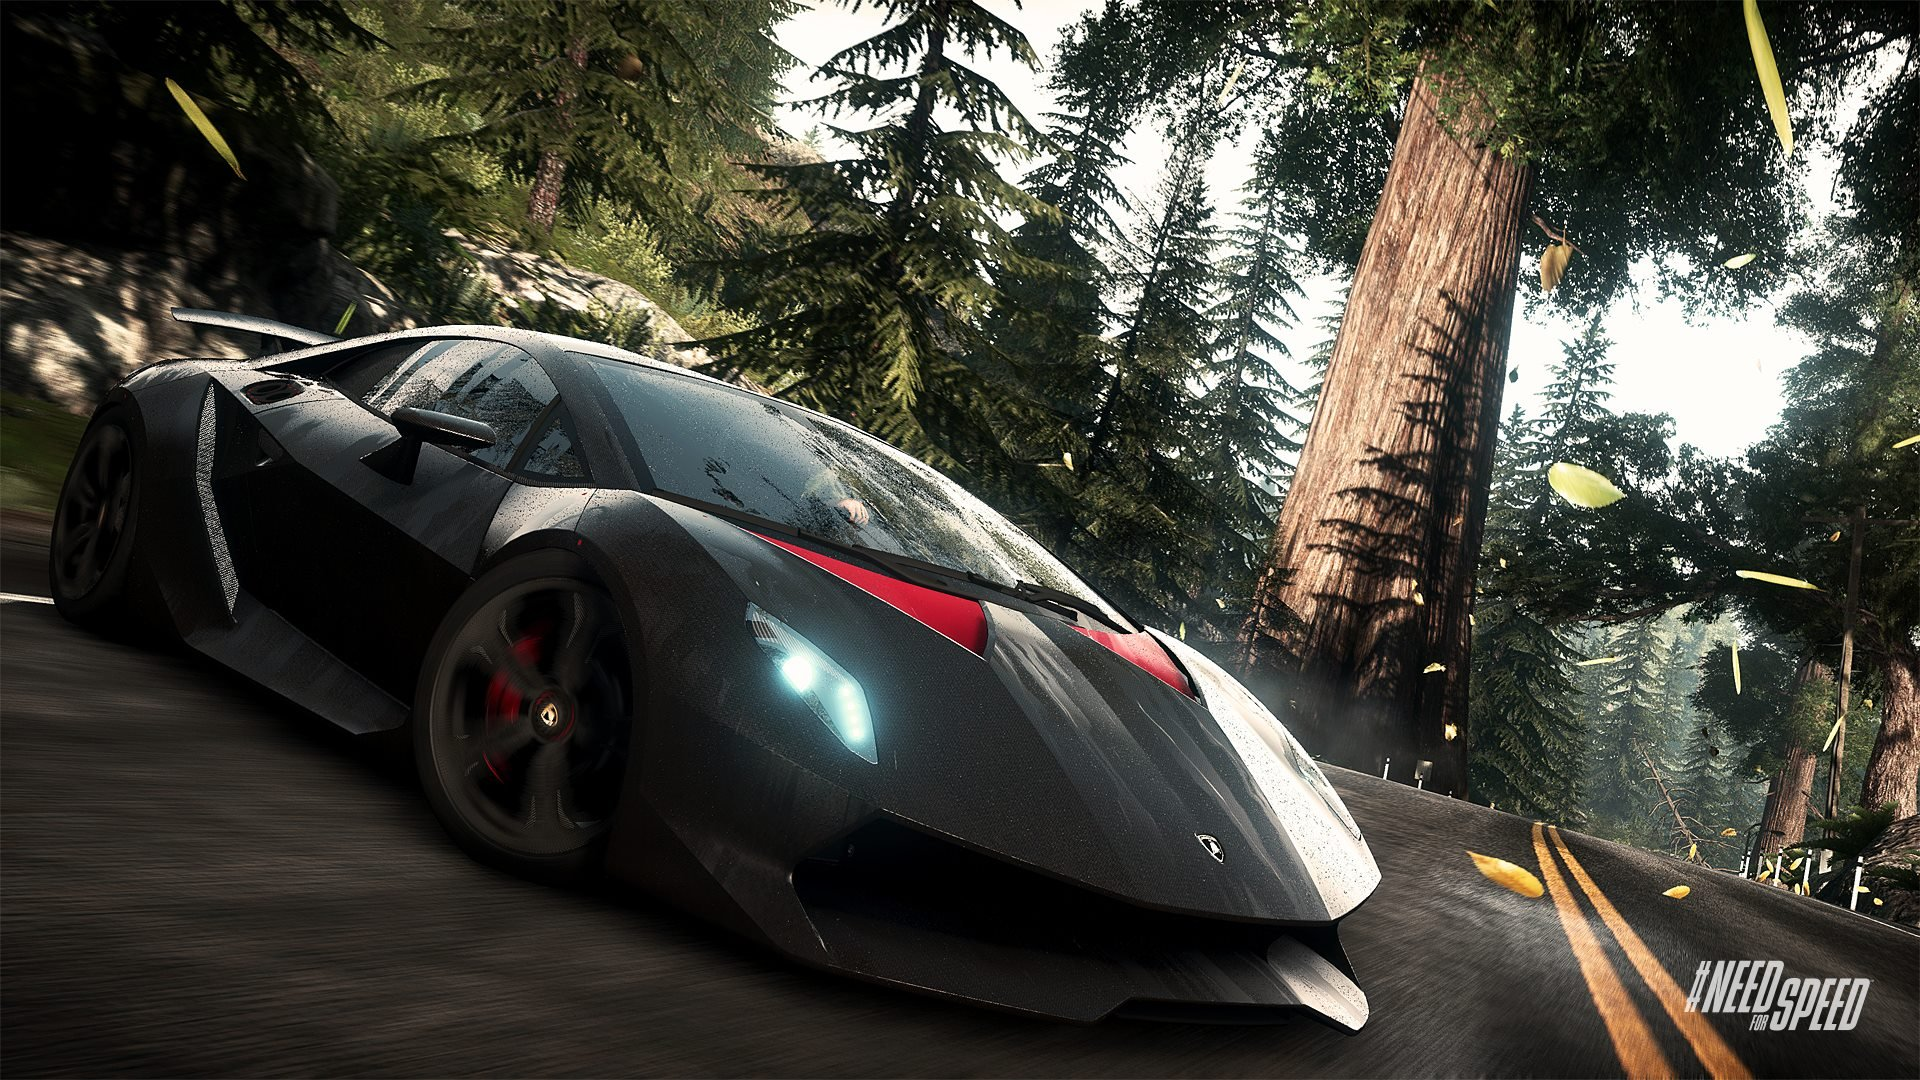 Wallpaperswide Need For Speed Carbon Wallpapers Wallpaper 1920x1080